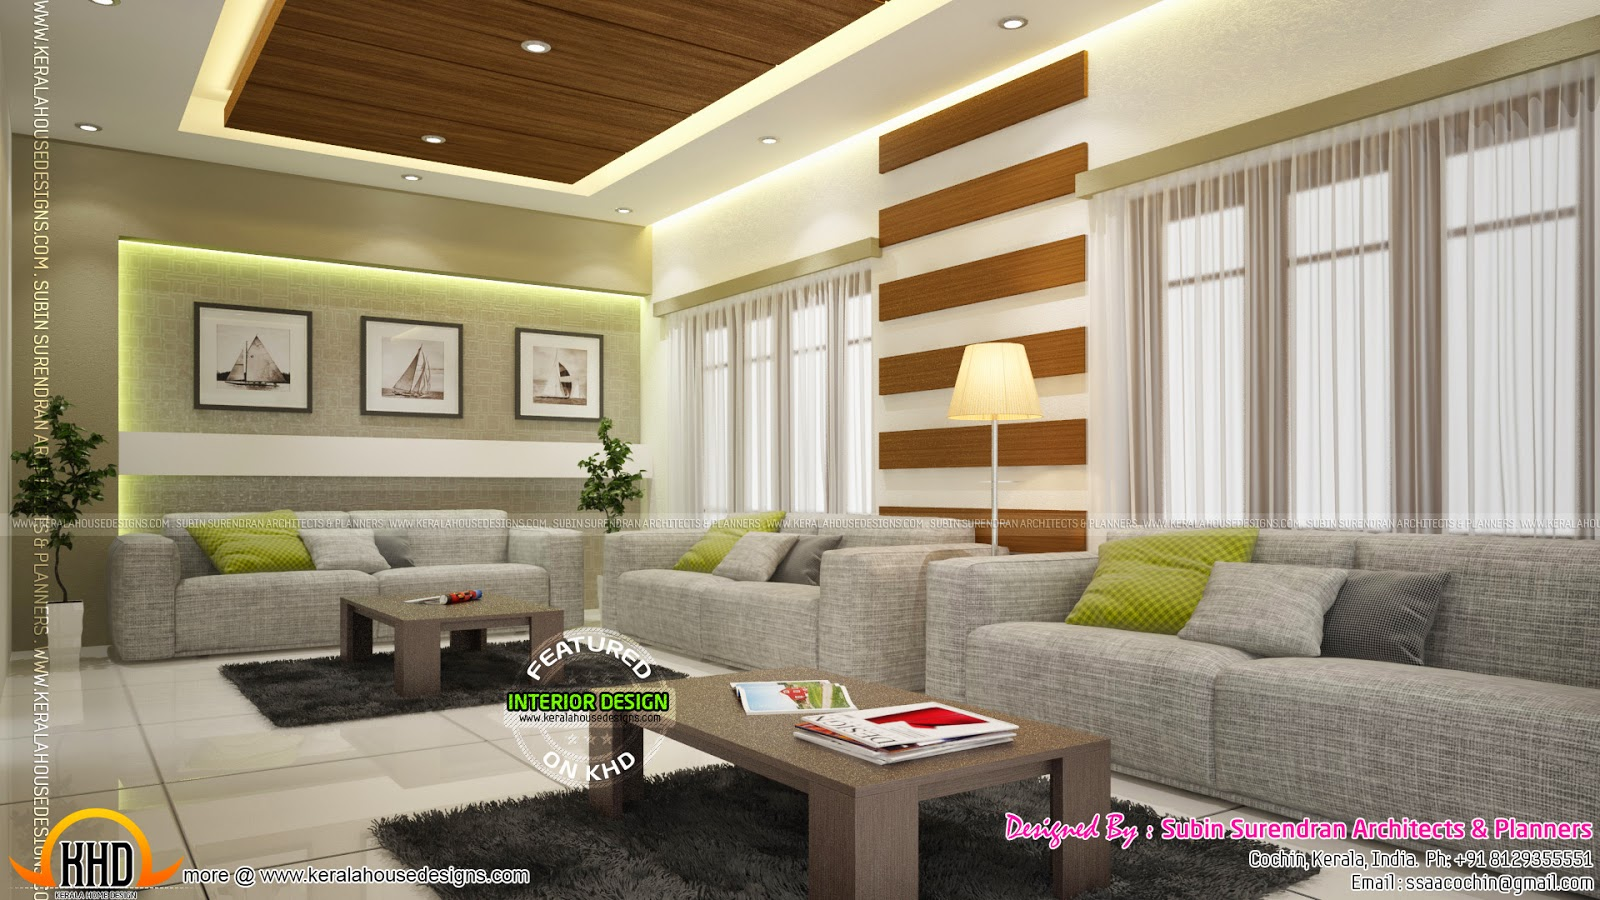 Beautiful home interior designs kerala home design and floor plans - Beautifull rooms ...